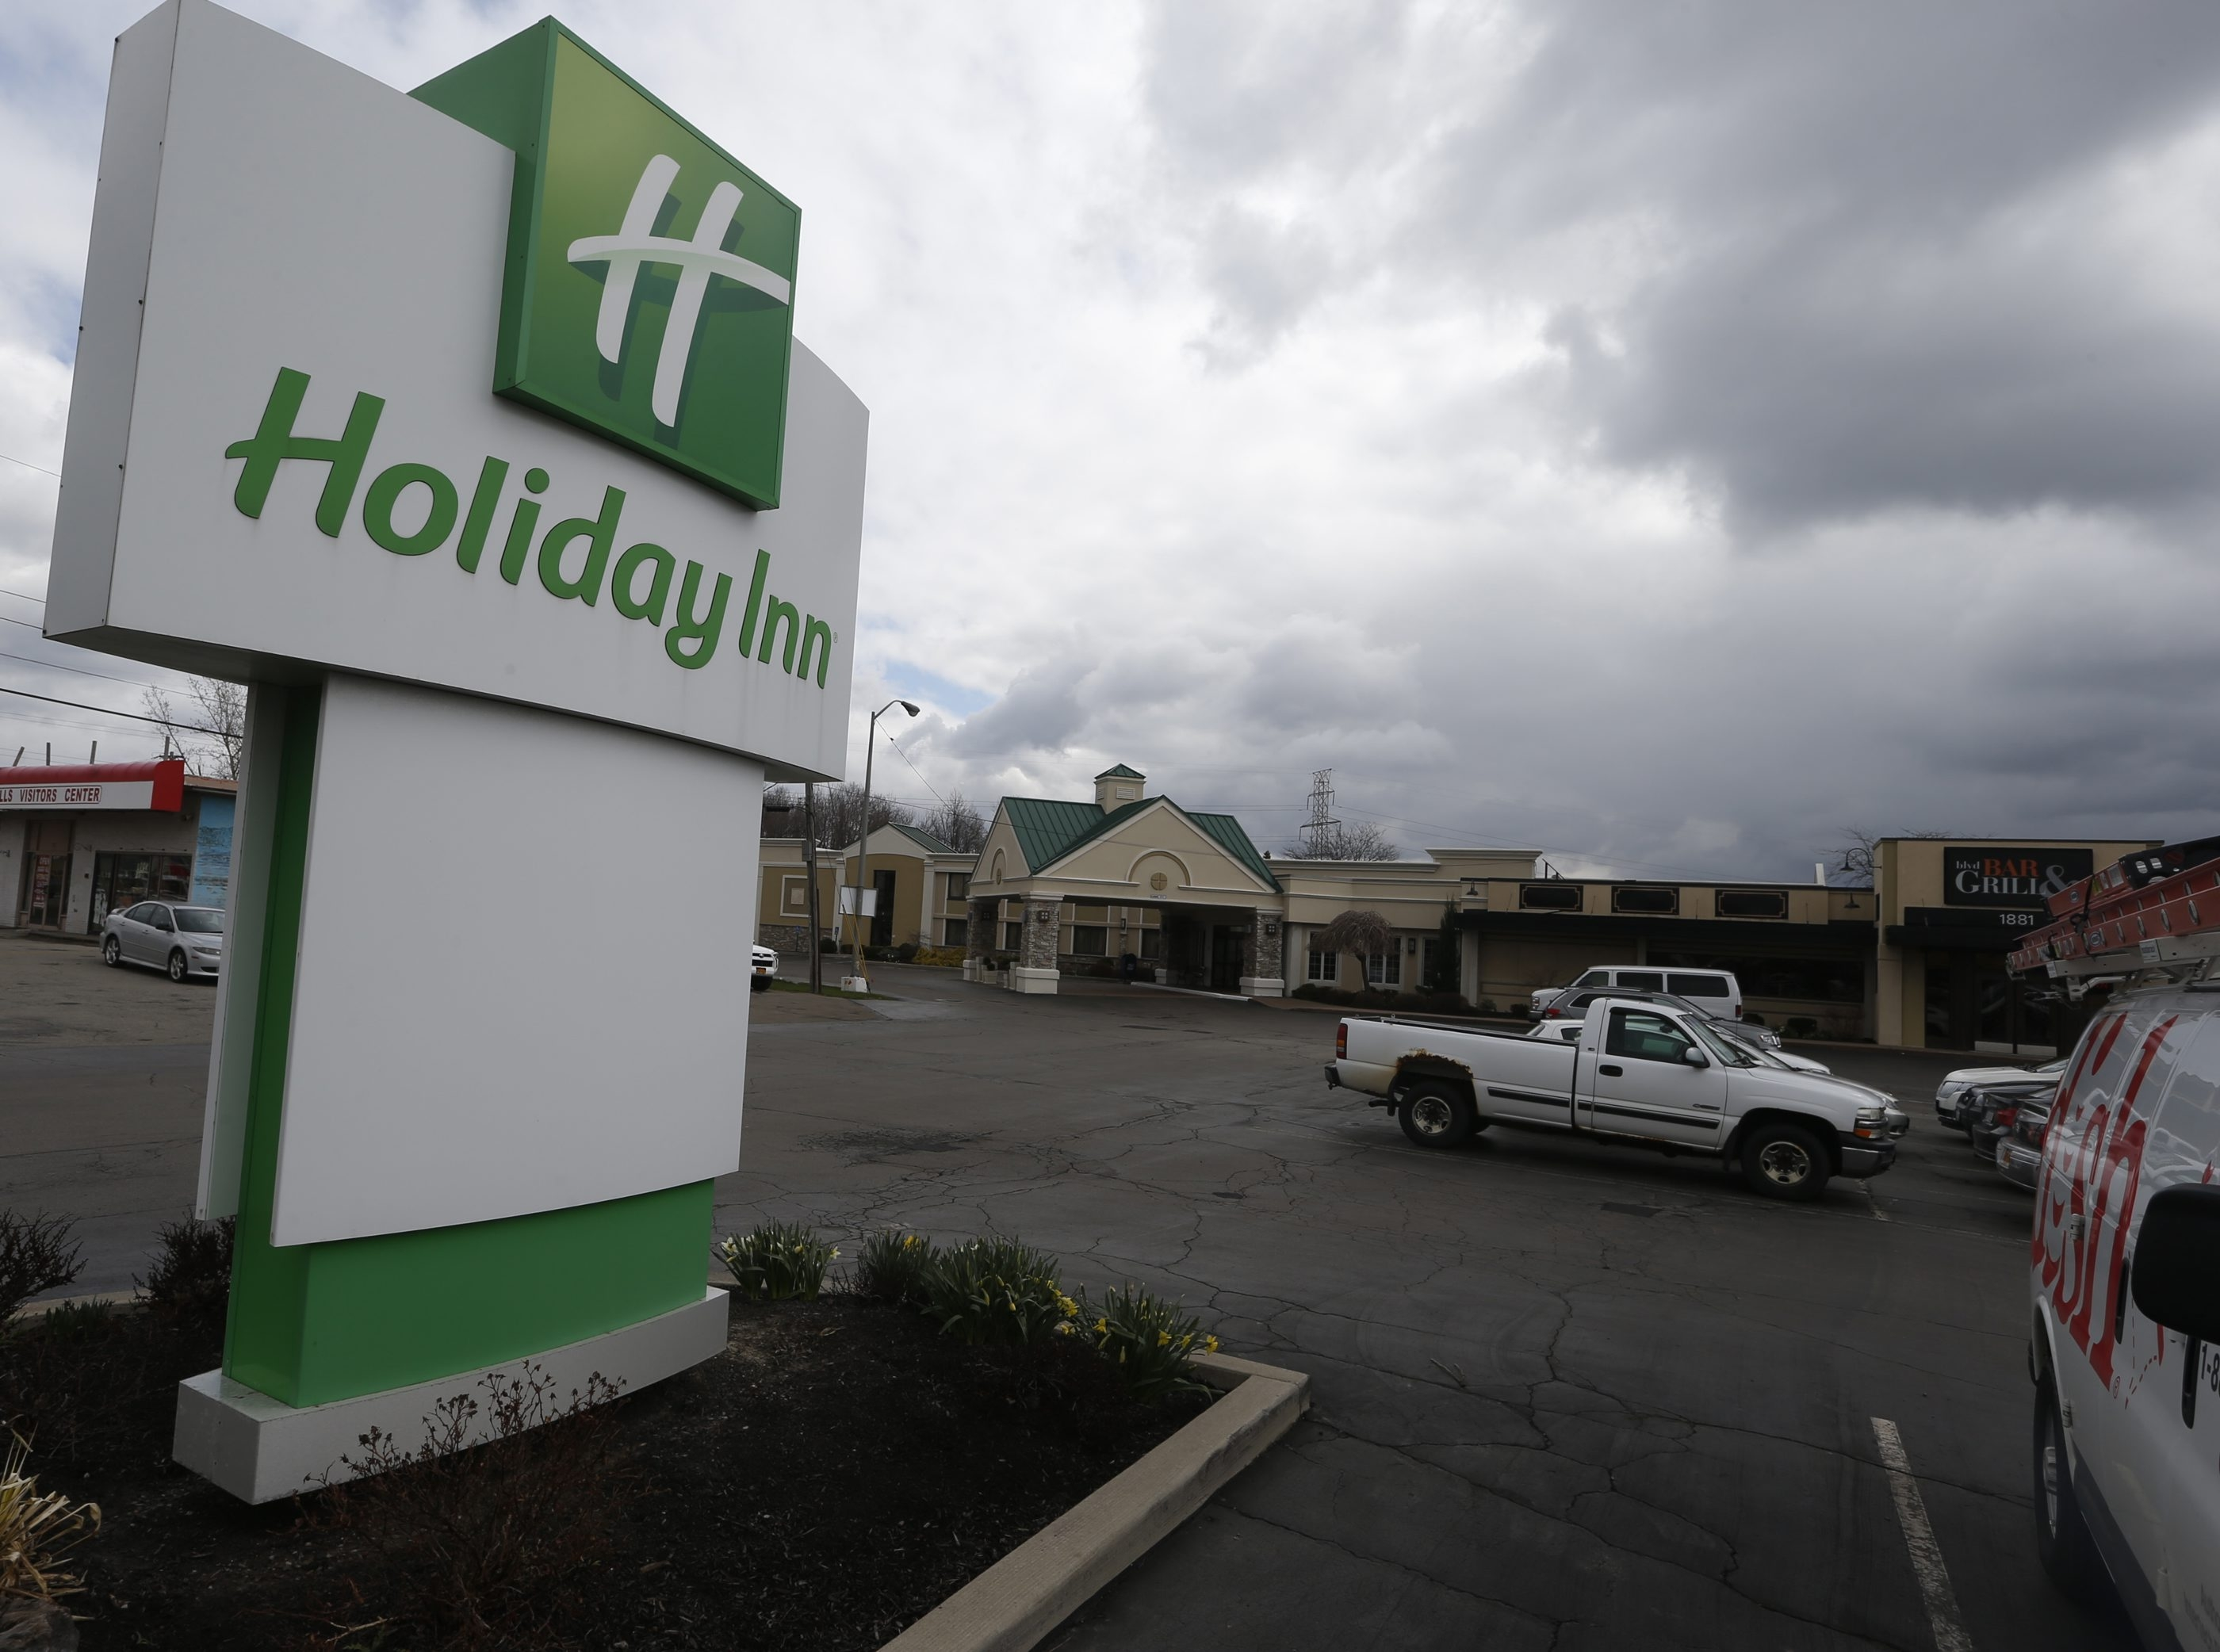 Holiday Inn Buffalo-Amherst, 1881 Niagara Falls Blvd., next to Youngmann Highway, has been in the heart of one of the region's biggest commercial districts for nearly 50 years. Richmond, Va.-based CarMax Inc. intends to build a dealership on the property.